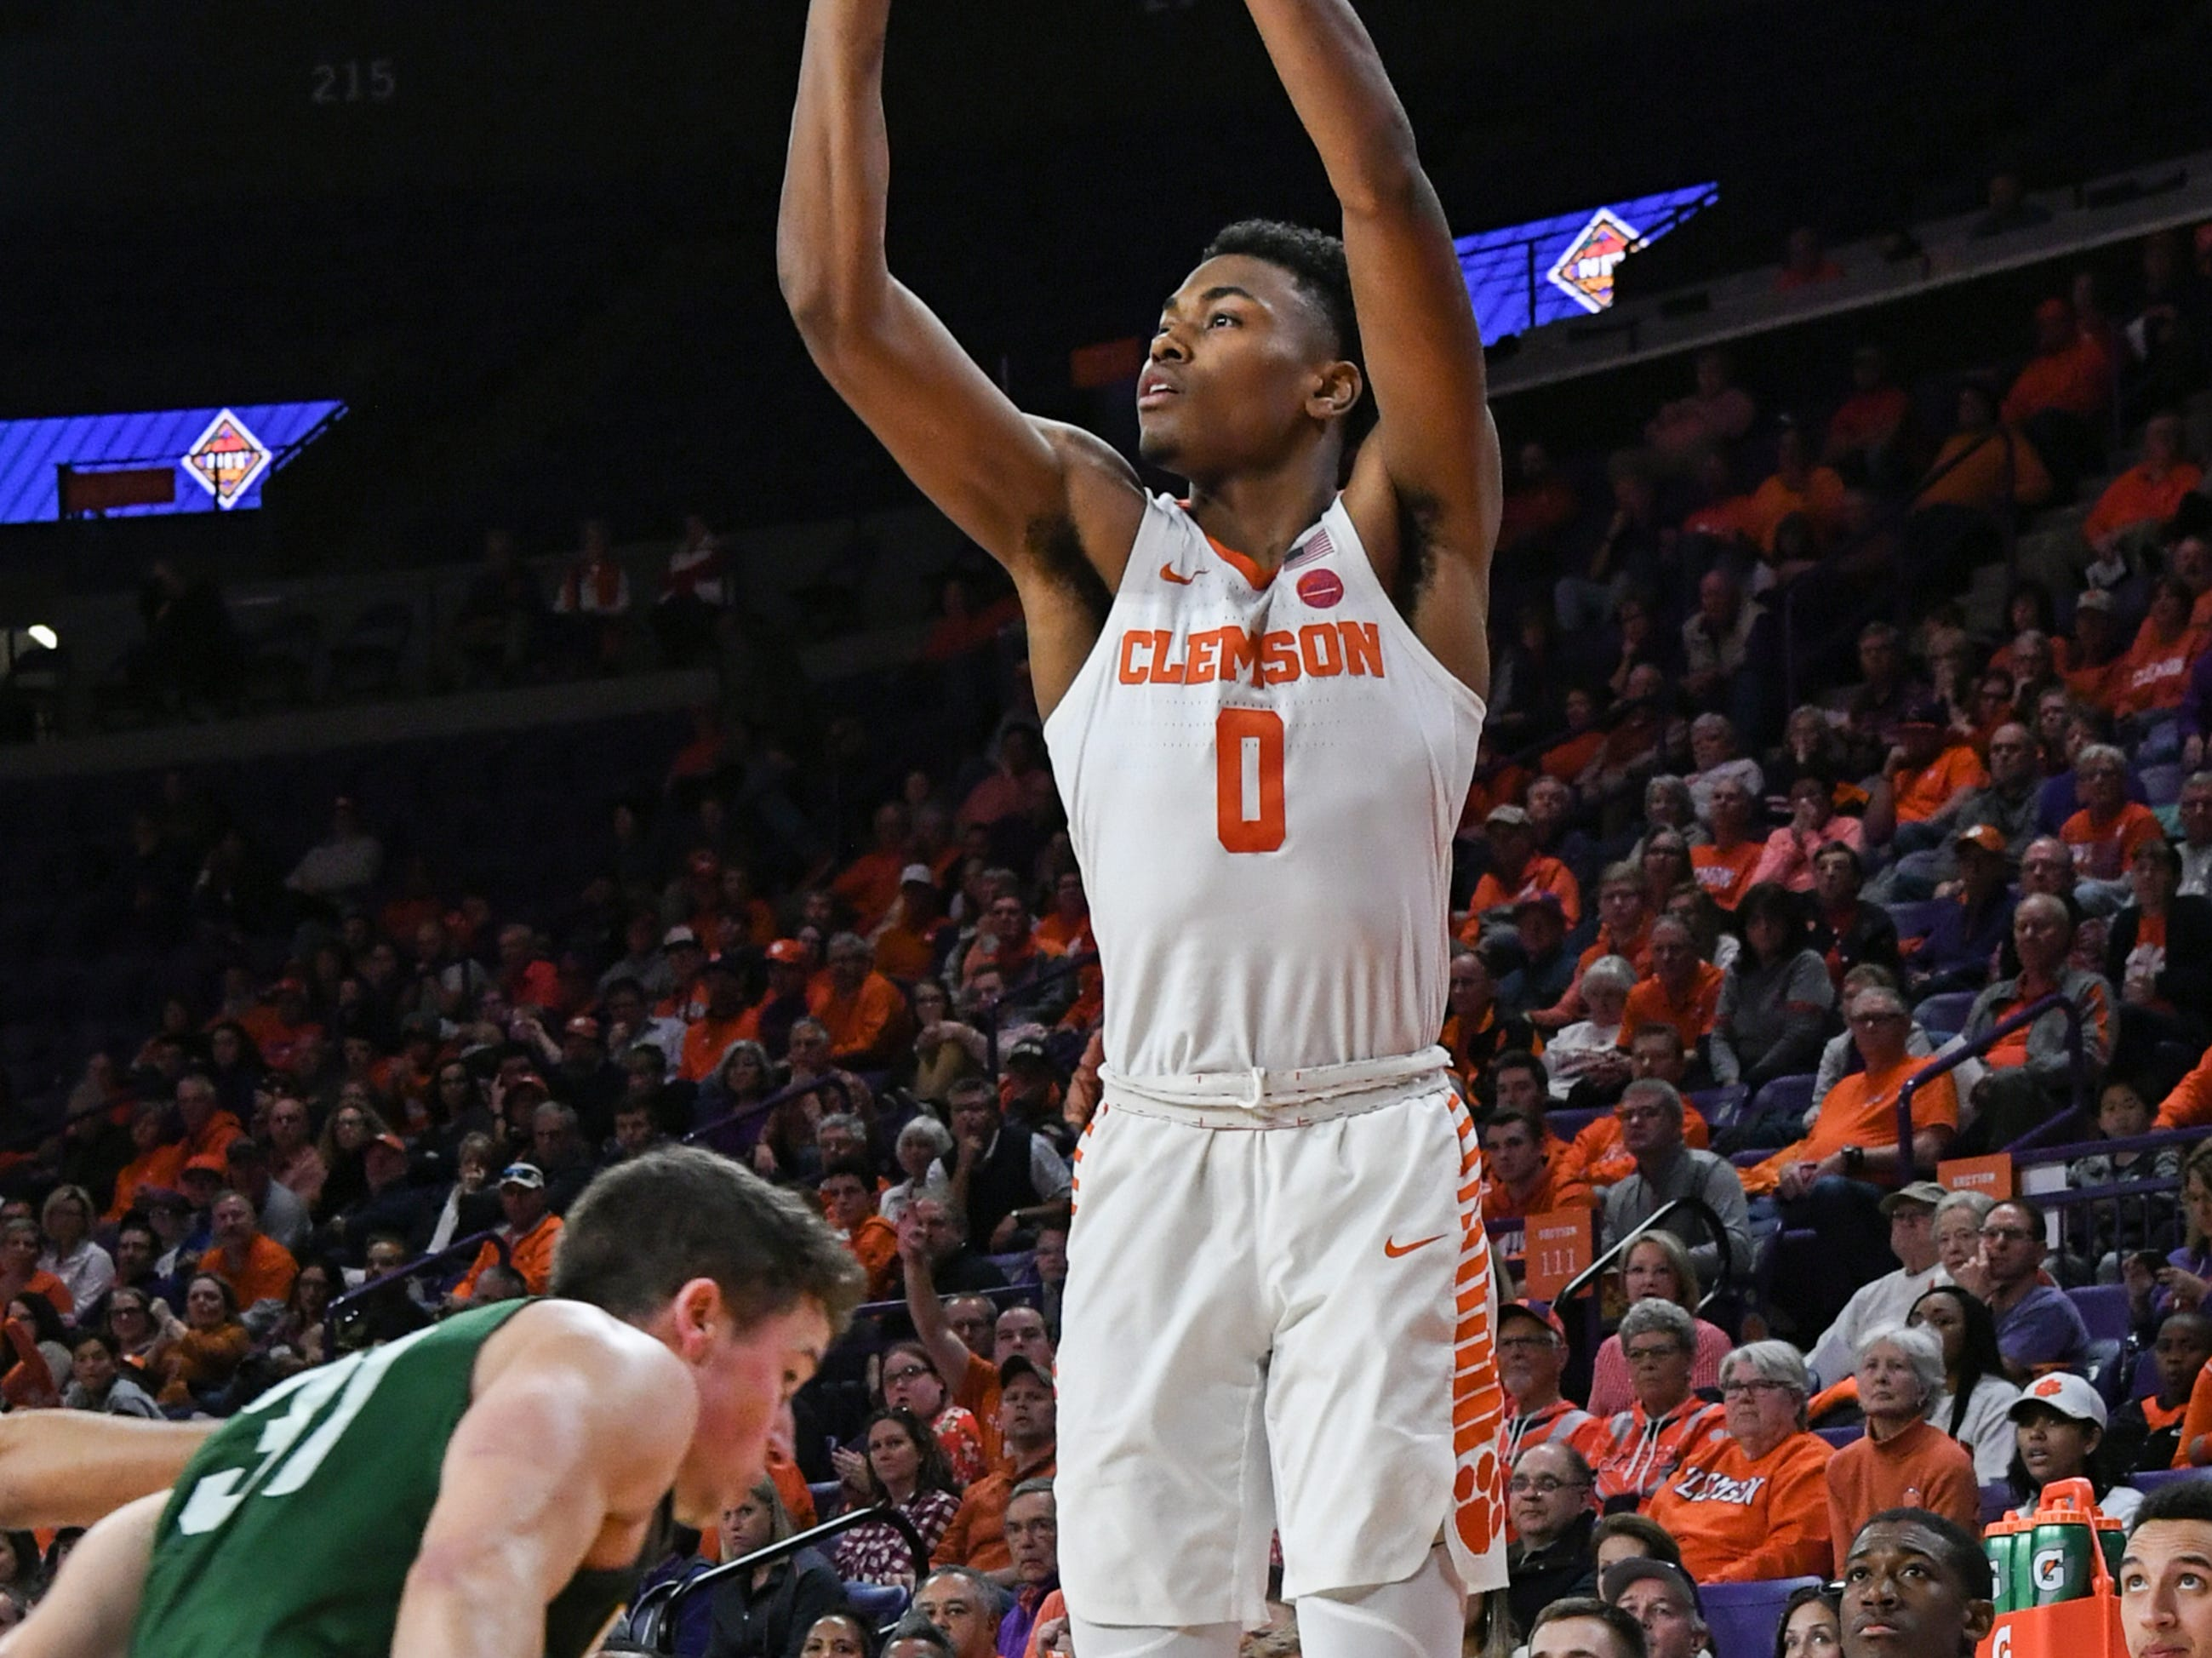 Clemson center Clyde Trapp (0) shoots near Wright State guard Cole Gentry(31) during the second half of the NIT at Littlejohn Coliseum in Clemson Tuesday, March 19, 2019.